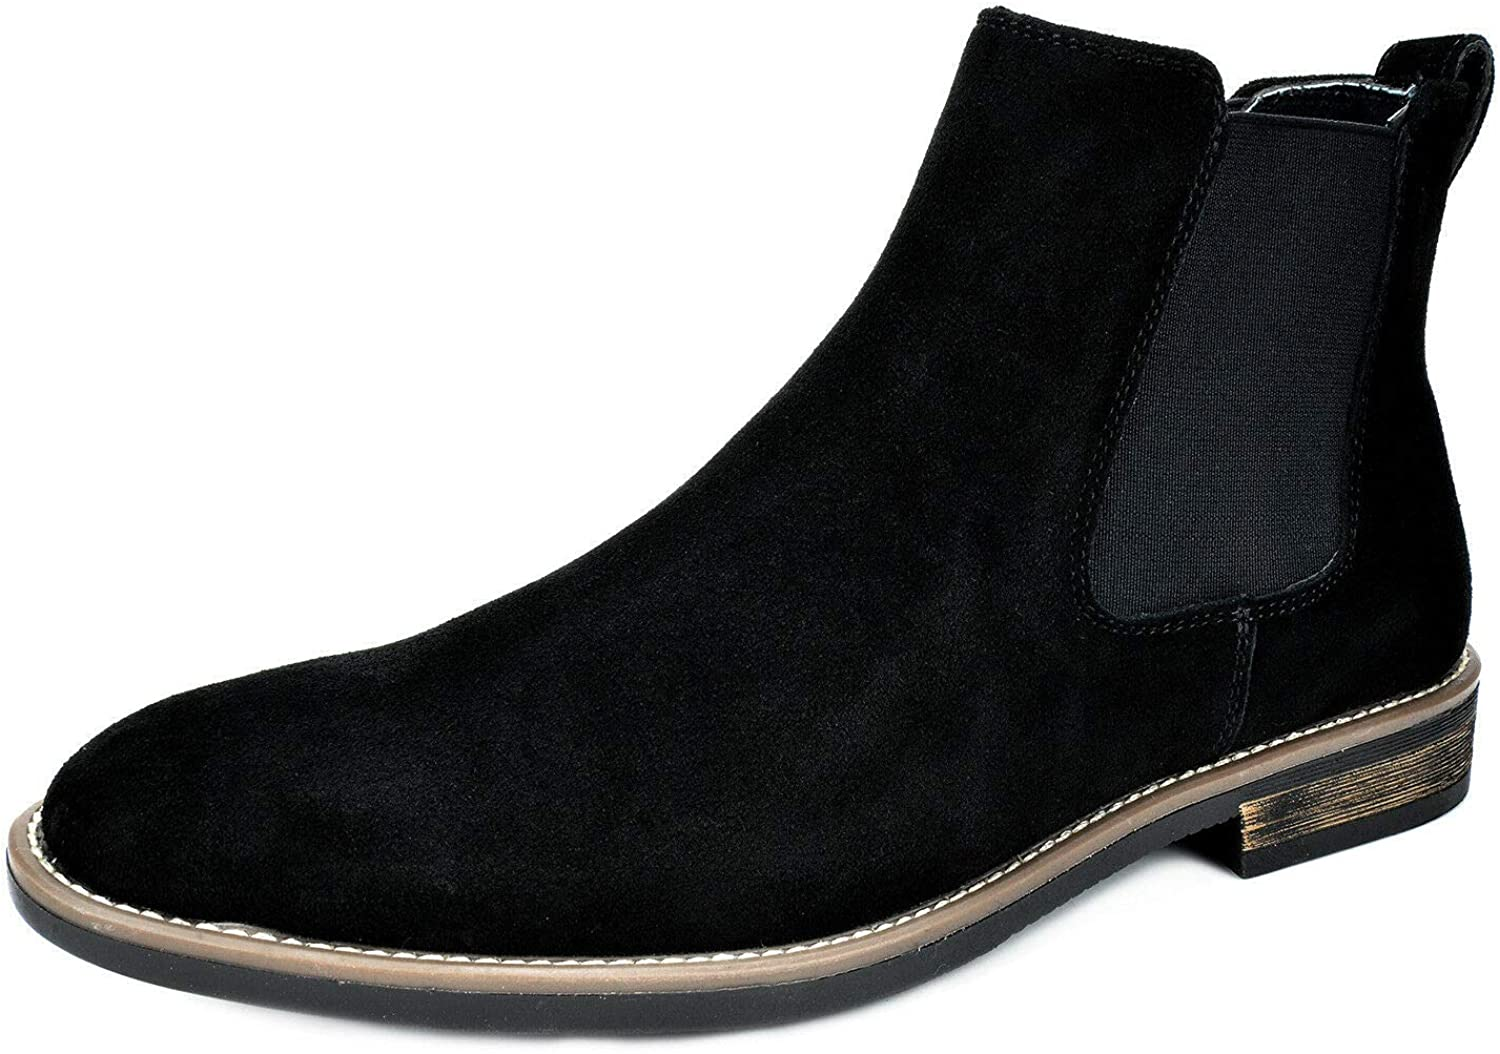 Bruno Marc Men's Suede Leather Chukka Ankle Boots